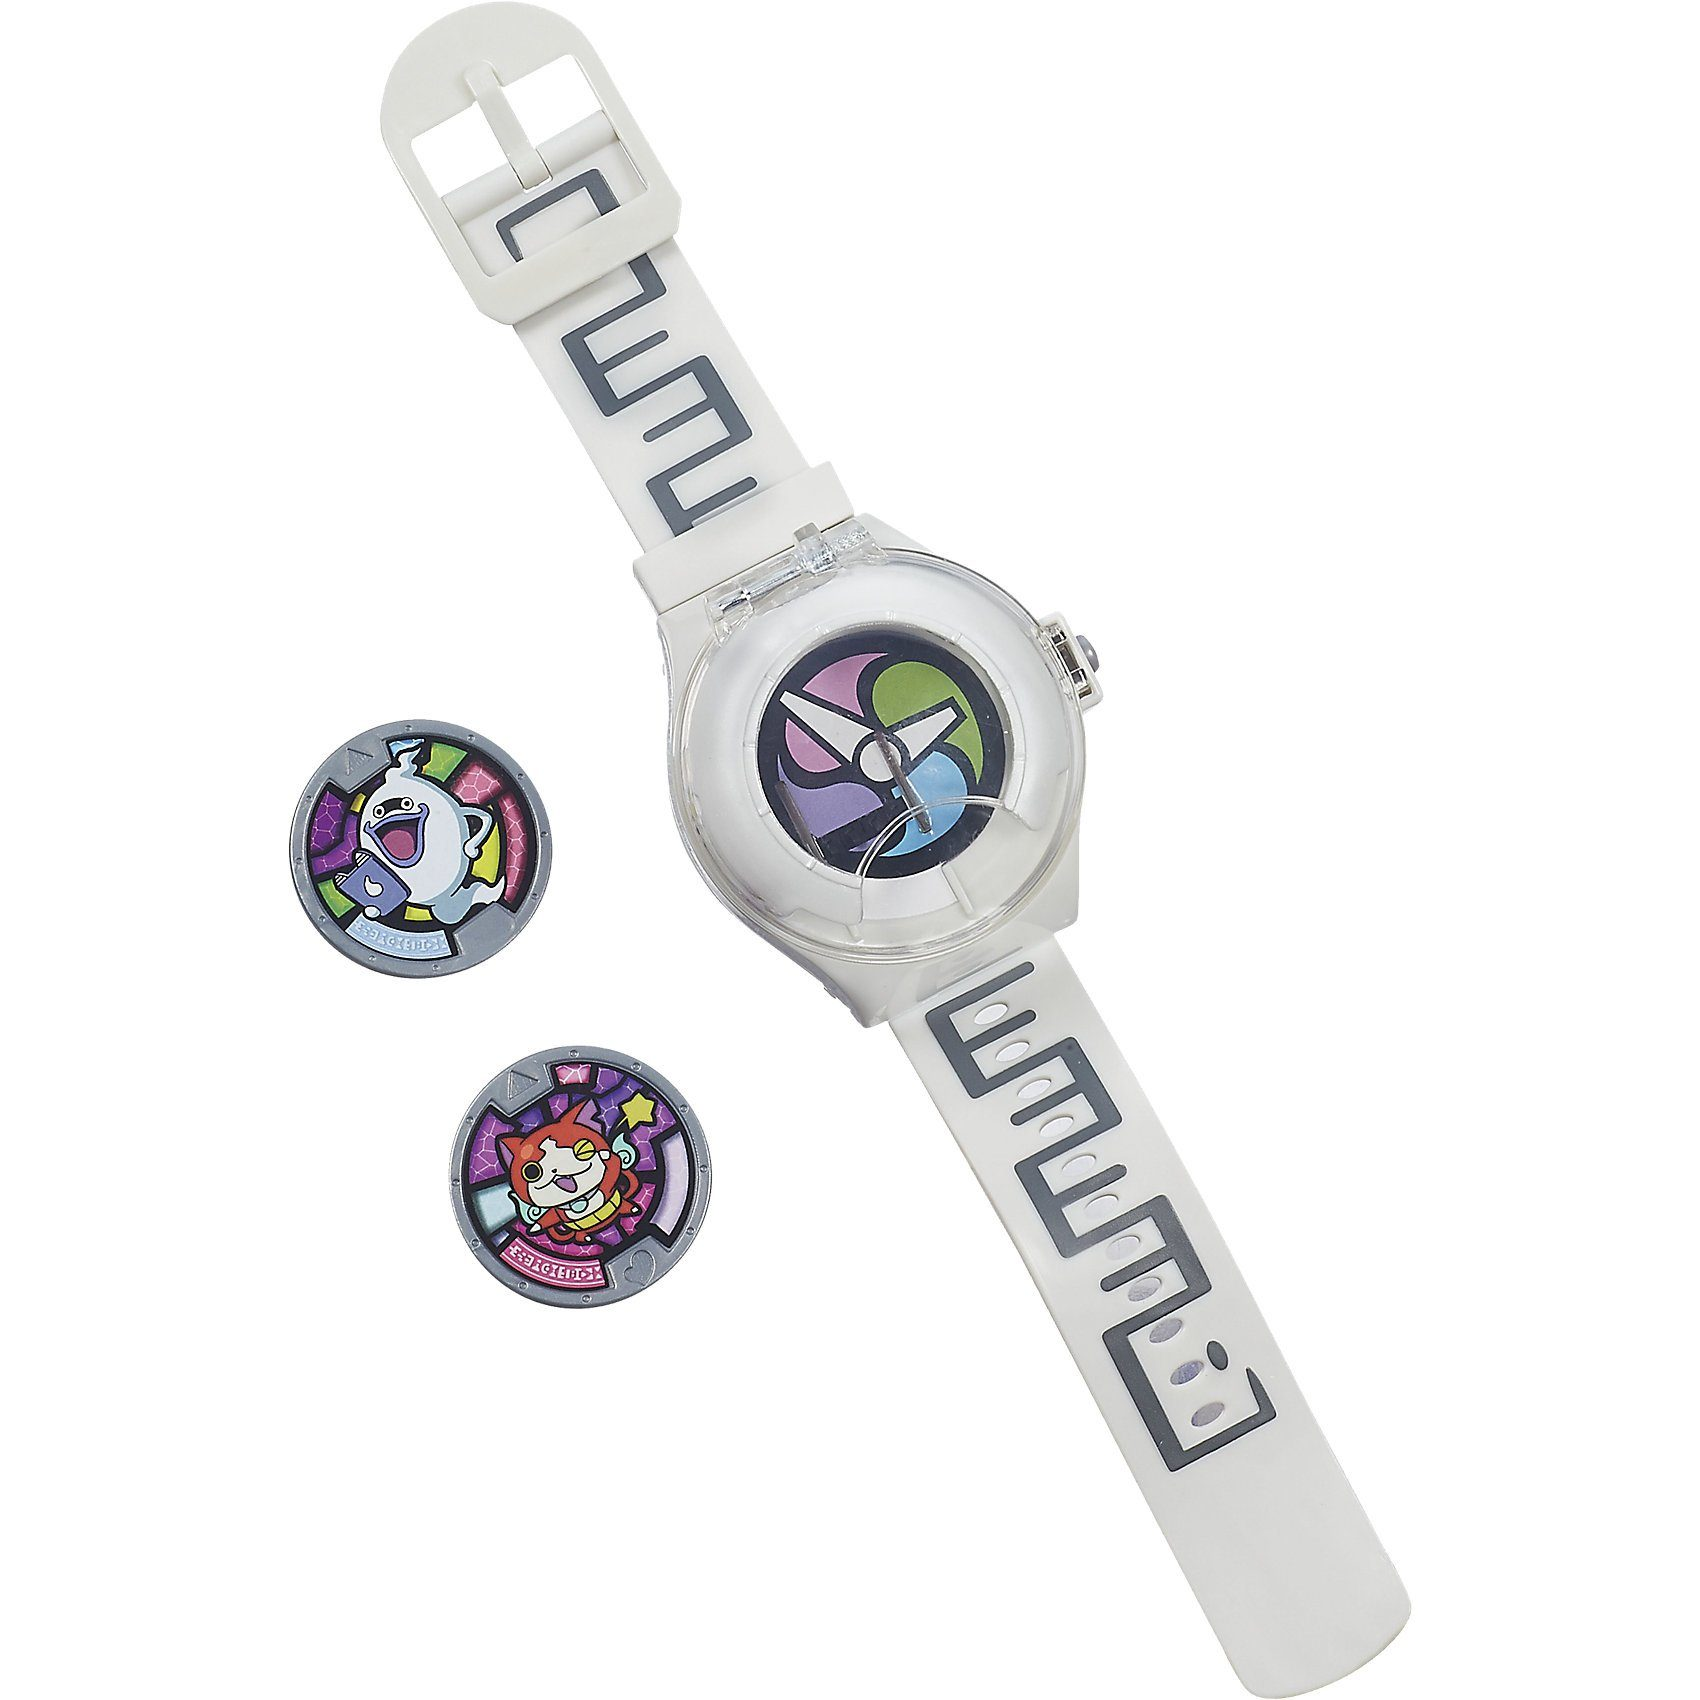 Hasbro Yo-Kai Watch - Yo-Kai-Watch incl. 2 Medaillen